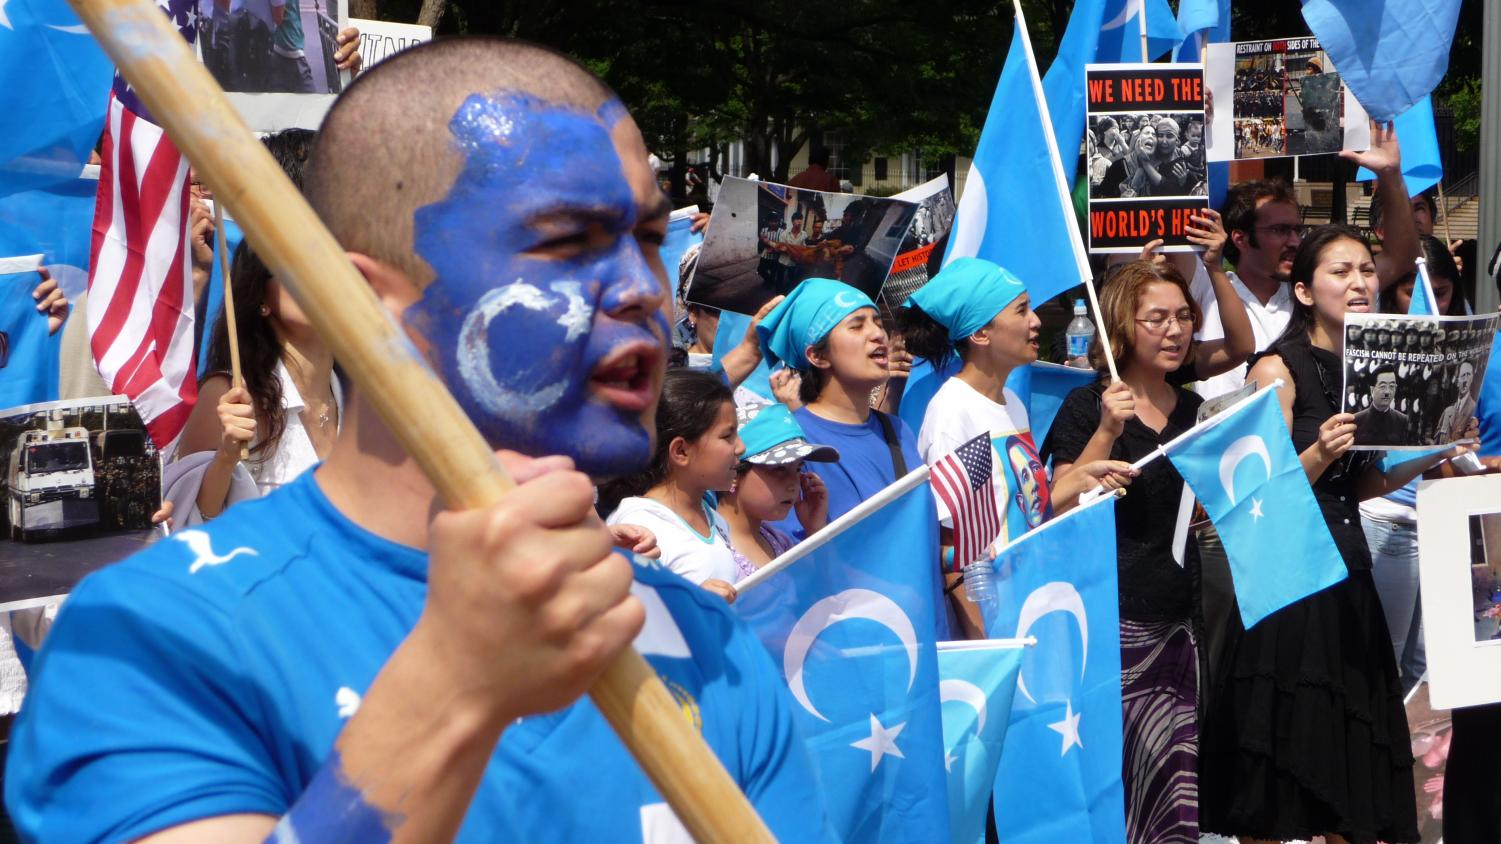 Protesters hold a rally outside the White House against China's treatment of Uighurs on July 10, 2009. Five days earlier, hundreds of Uighurs led riots in Xinjiang, China that quickly escalated into violence.